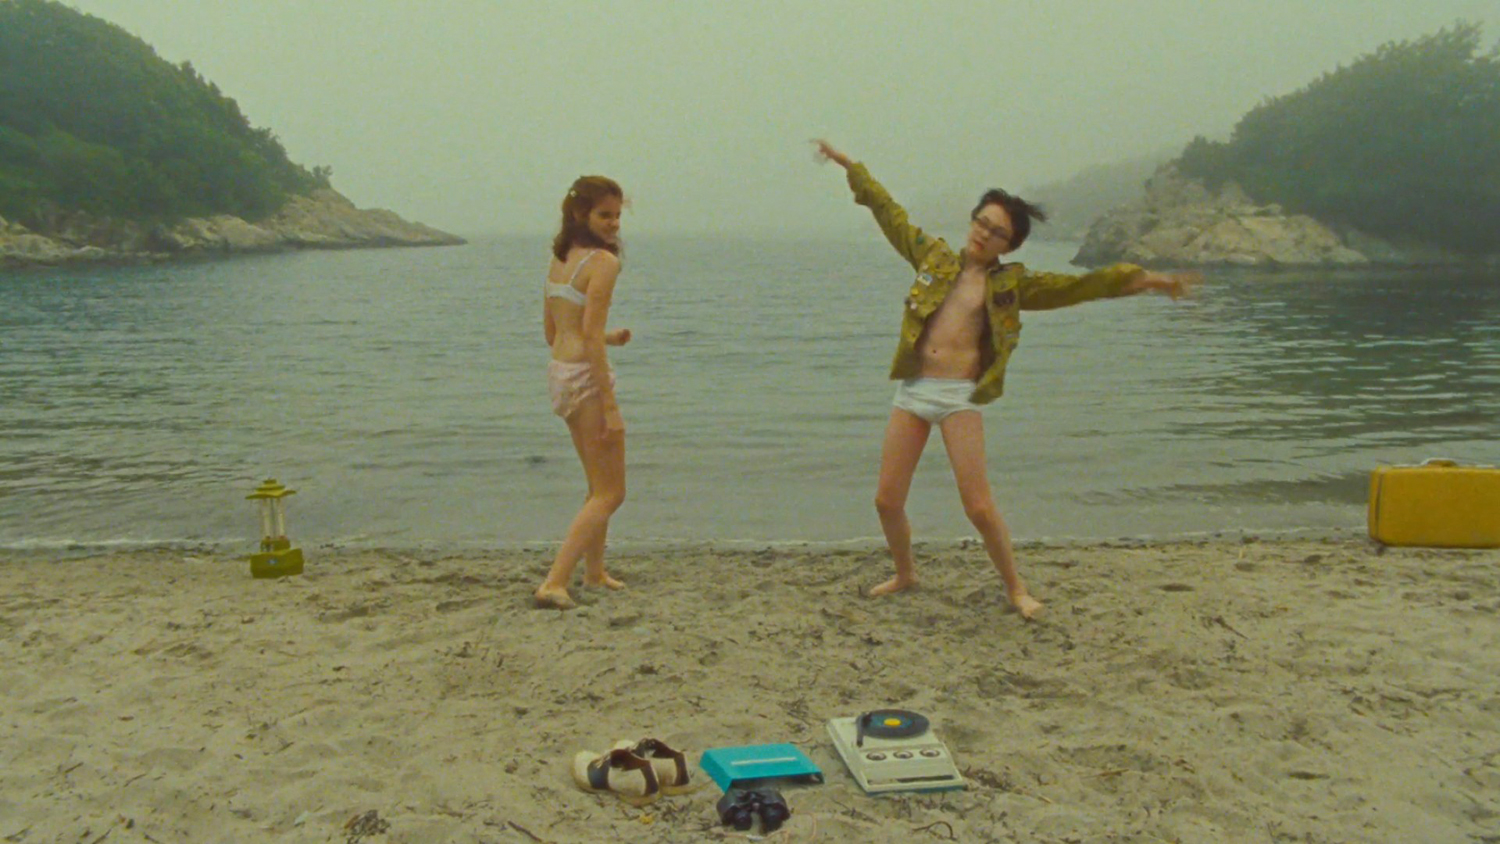 Moonrise Kingdom (dir. Wes Anderson, 2012) will be screened in one of Krakow's outdoor cinemas this Friday